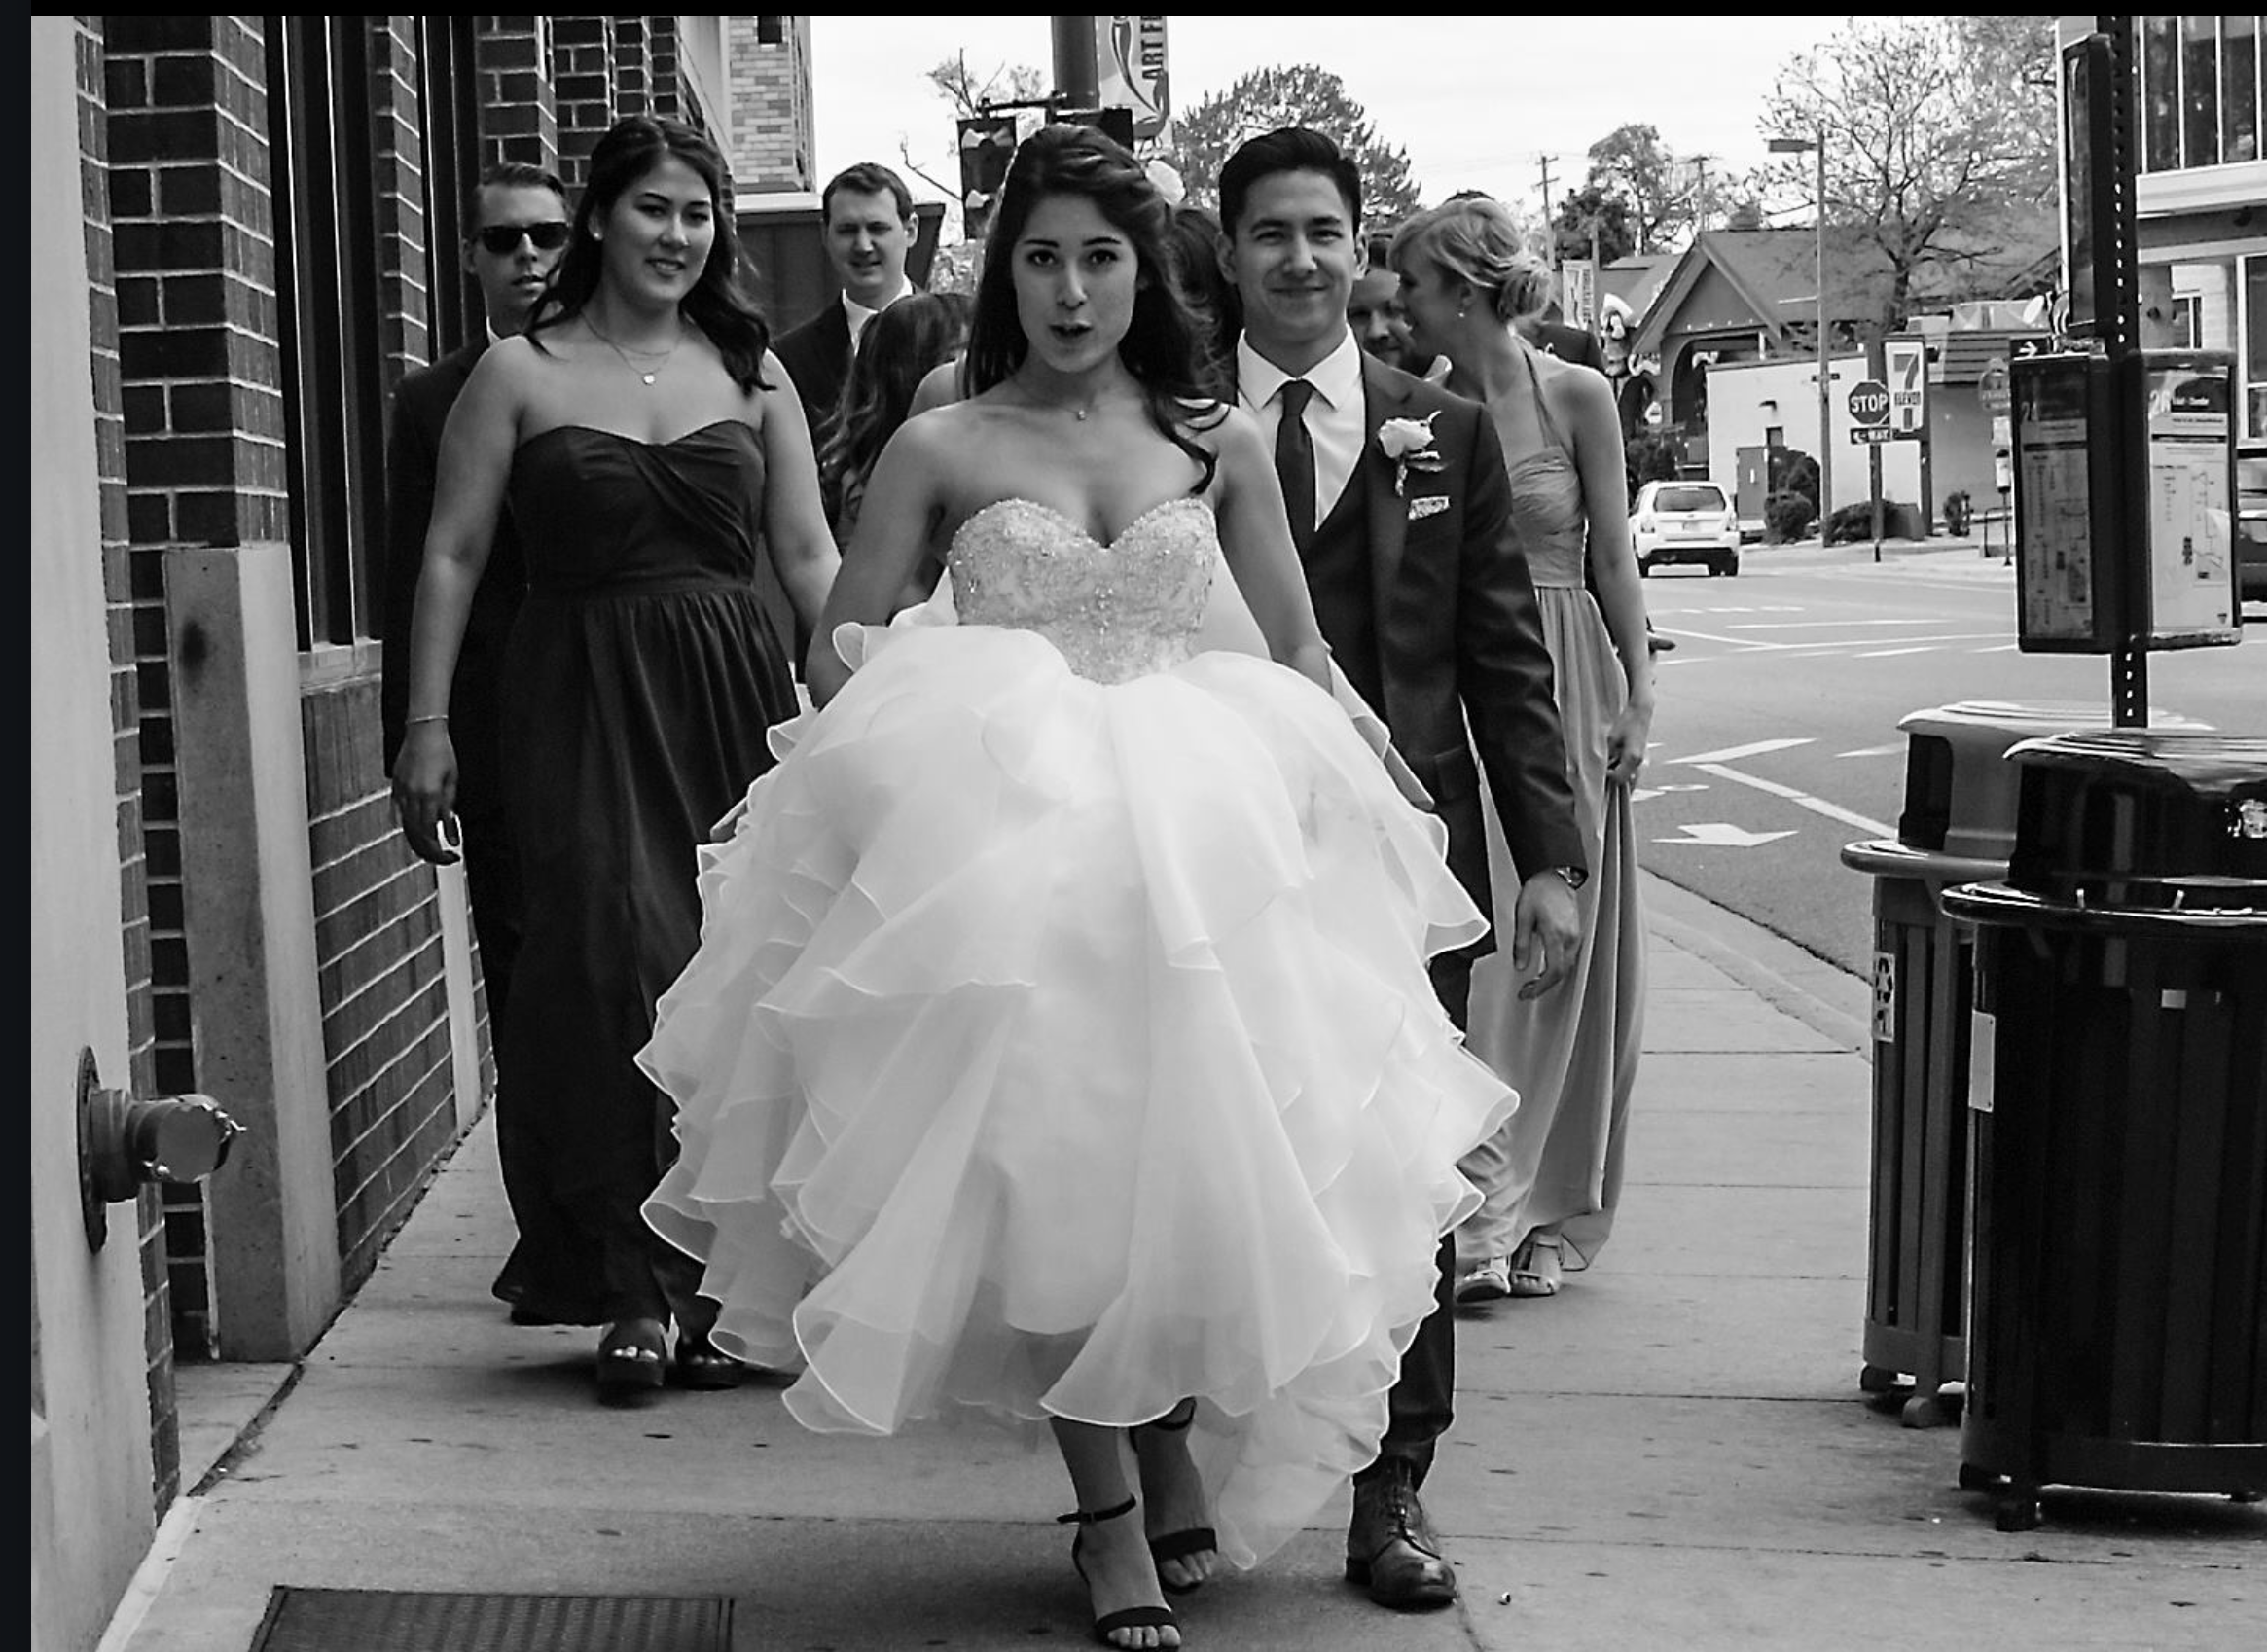 A confident bride strutting down the street.